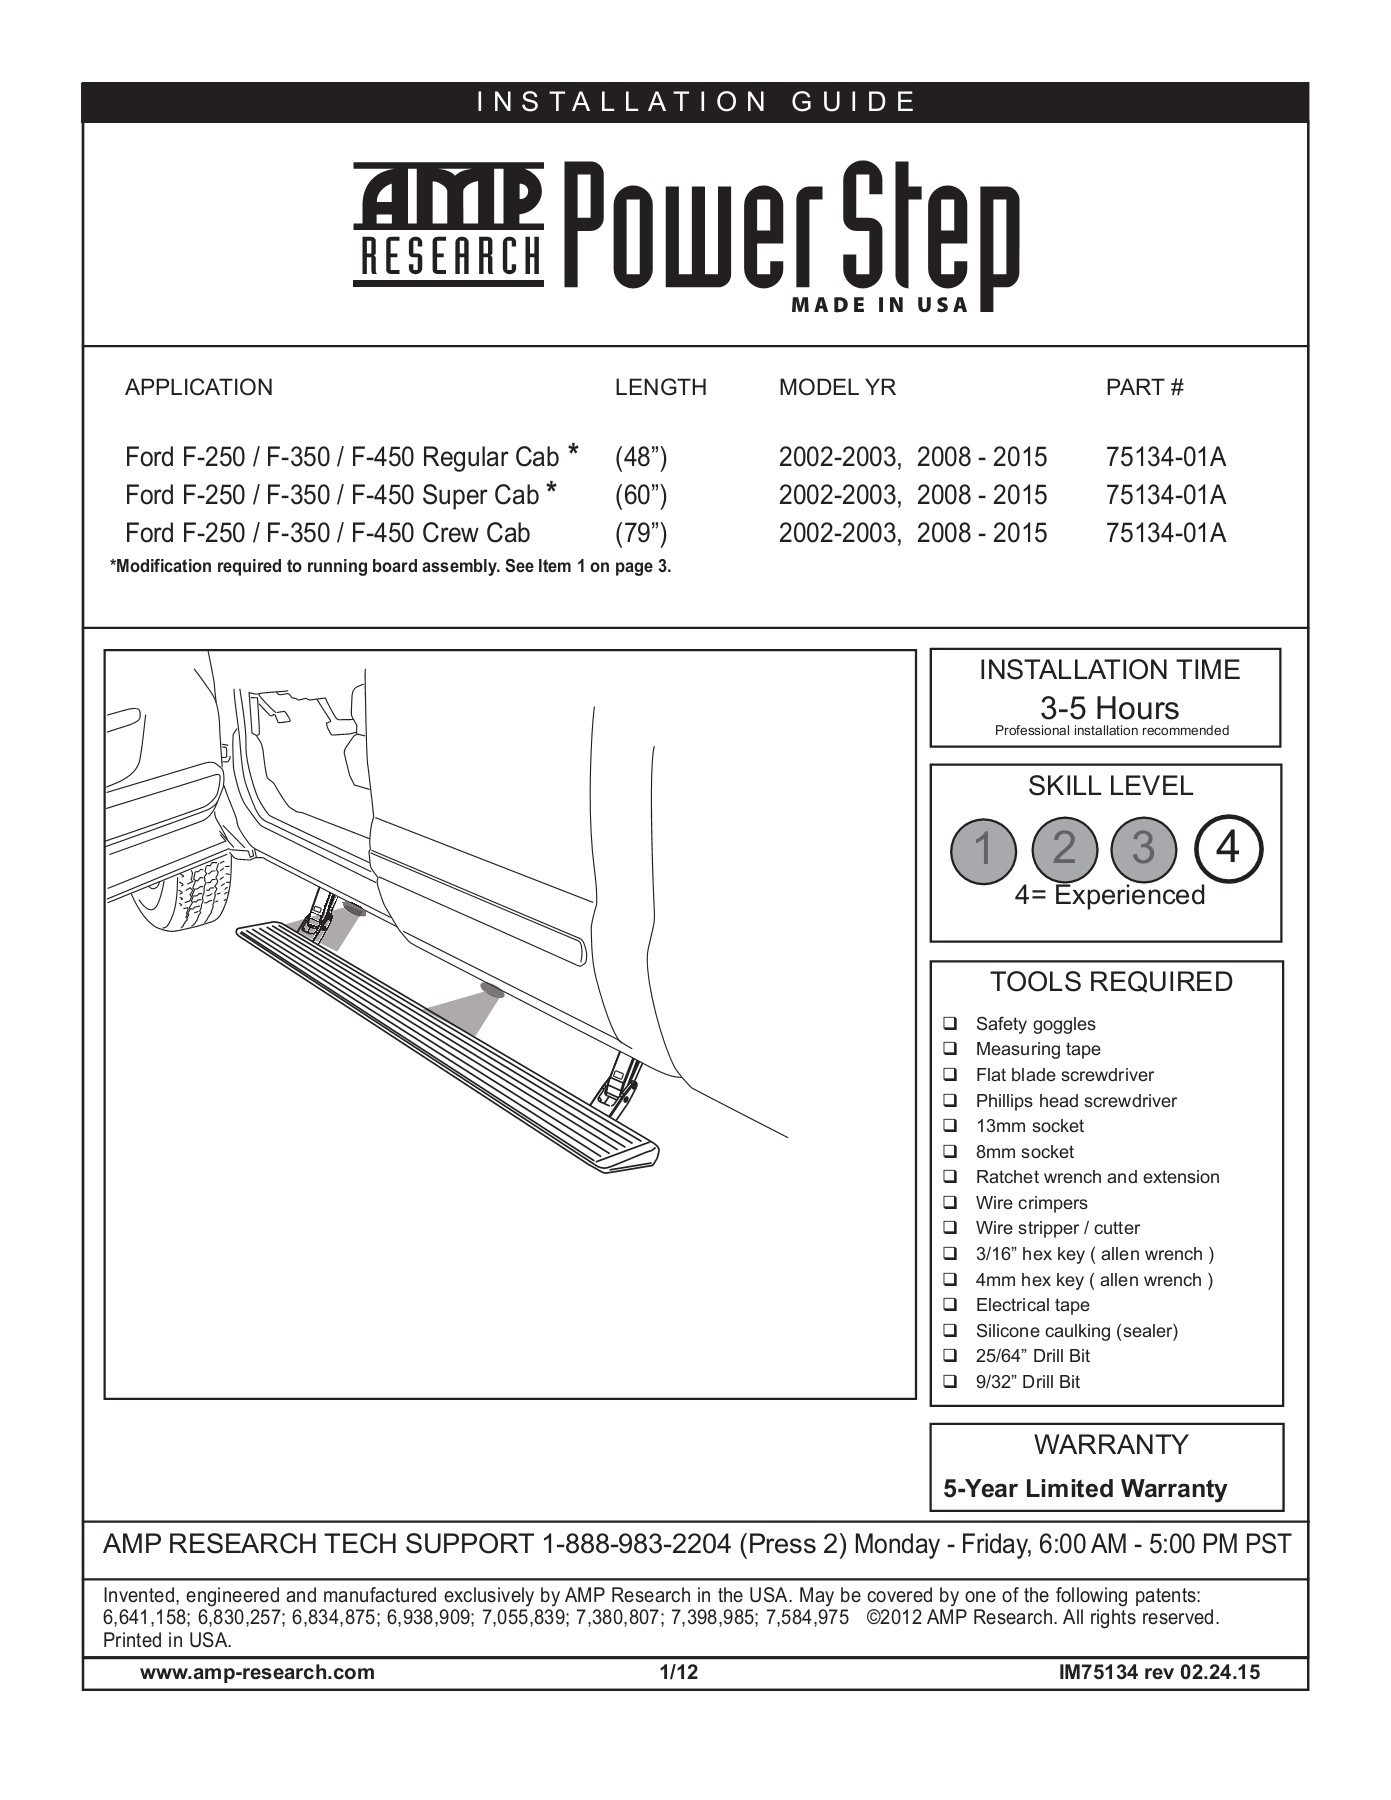 Amp Research Power Step Wiring Diagram Skill Level 1 2 3 4 Amp Research Pages 1 13 Text Of Amp Research Power Step Wiring Diagram